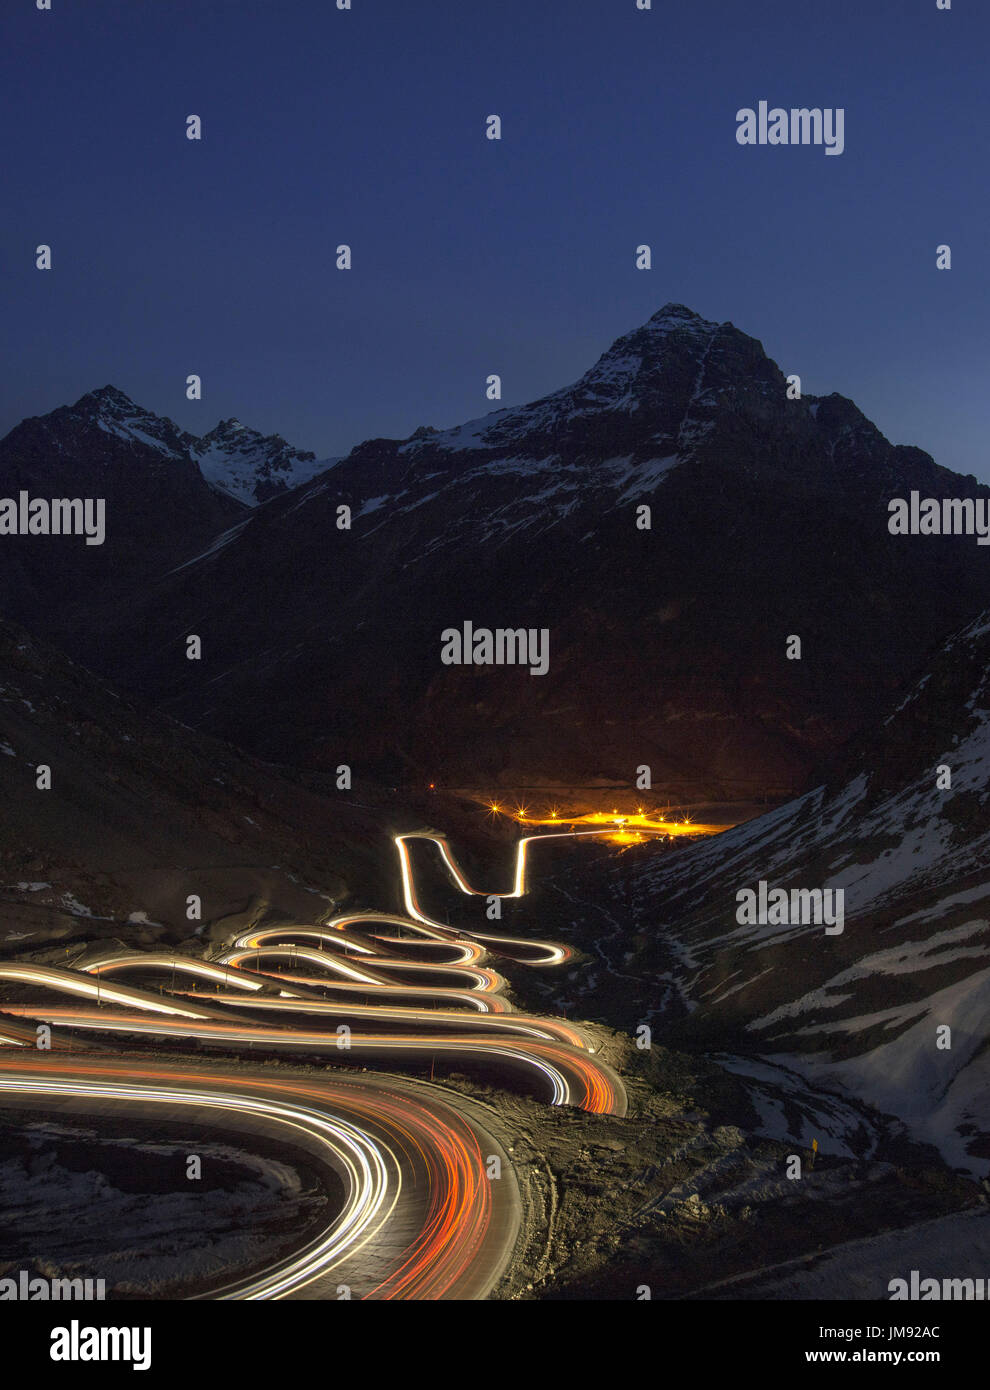 Vehicle light trails on Cuesta Caracoles Los Andes, the road to Portillo Ski resort and the Argentinian border: - Stock Image